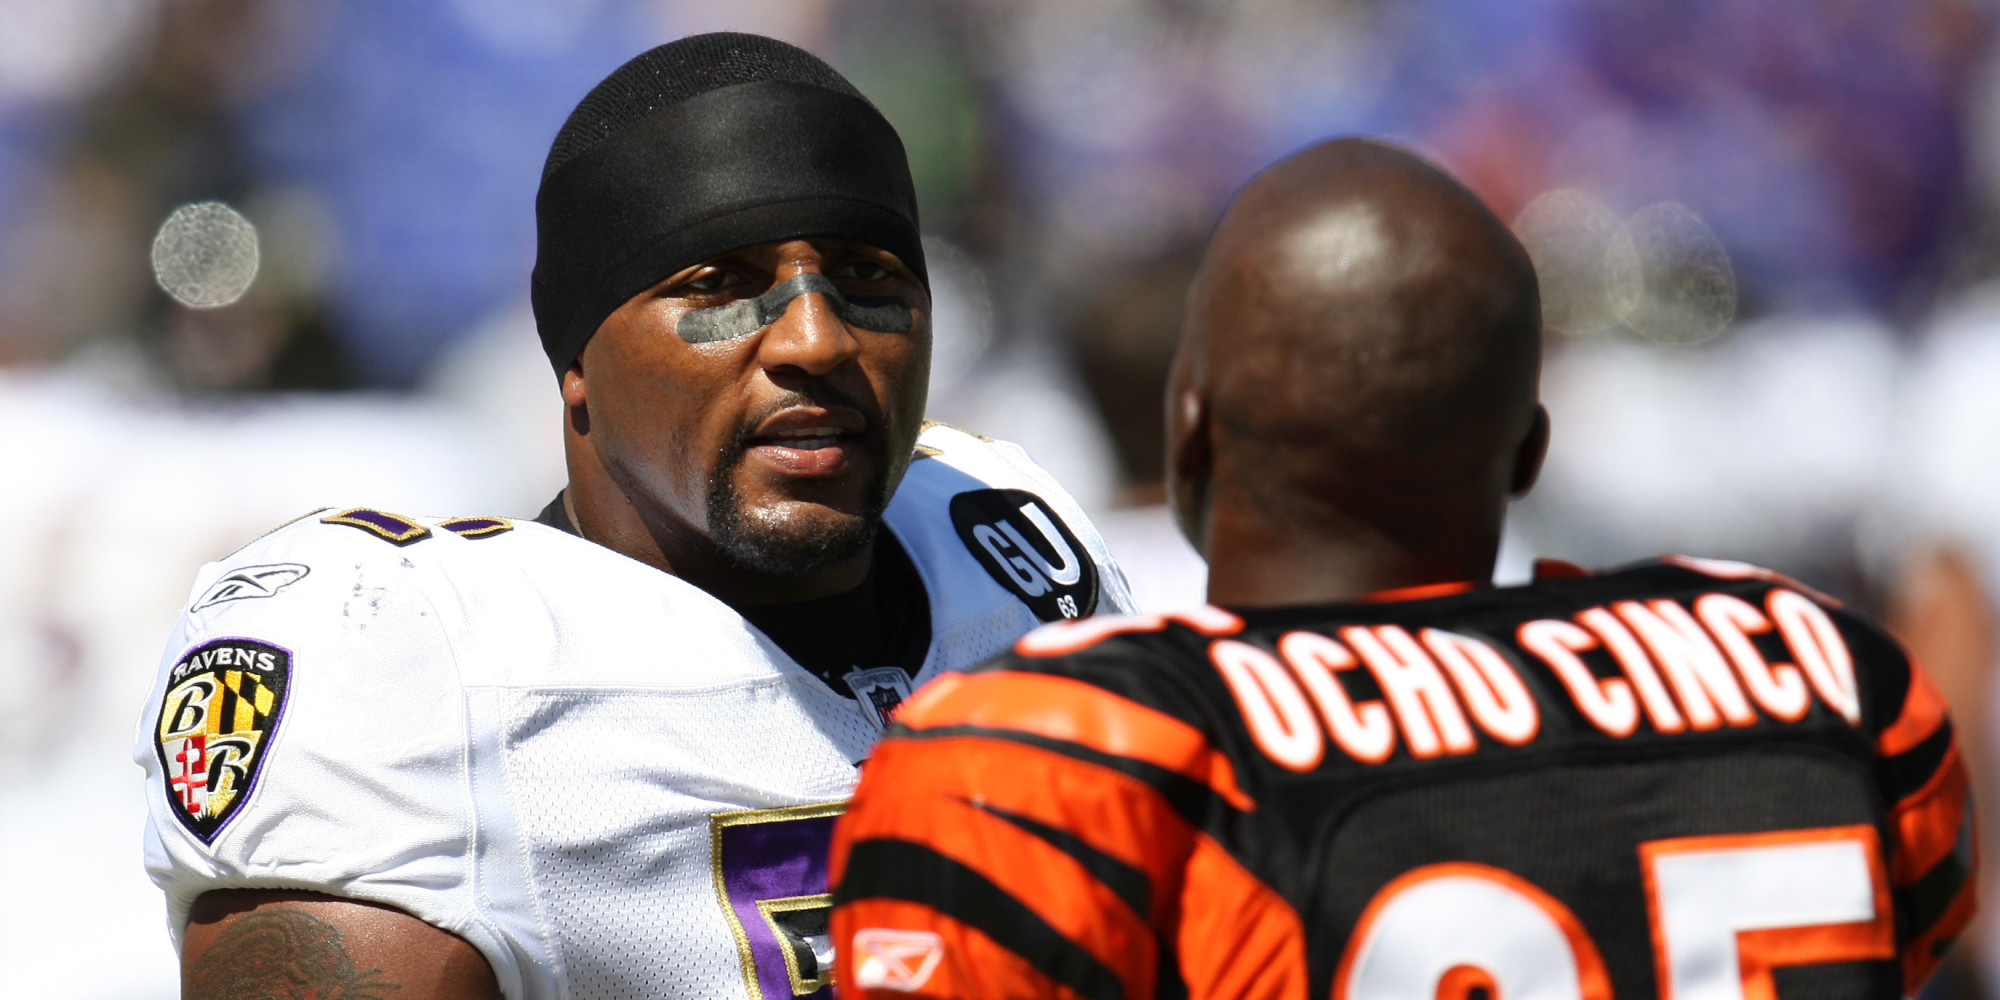 Chad Johnson Claims He Tried To Fight Ray Lewis Twice